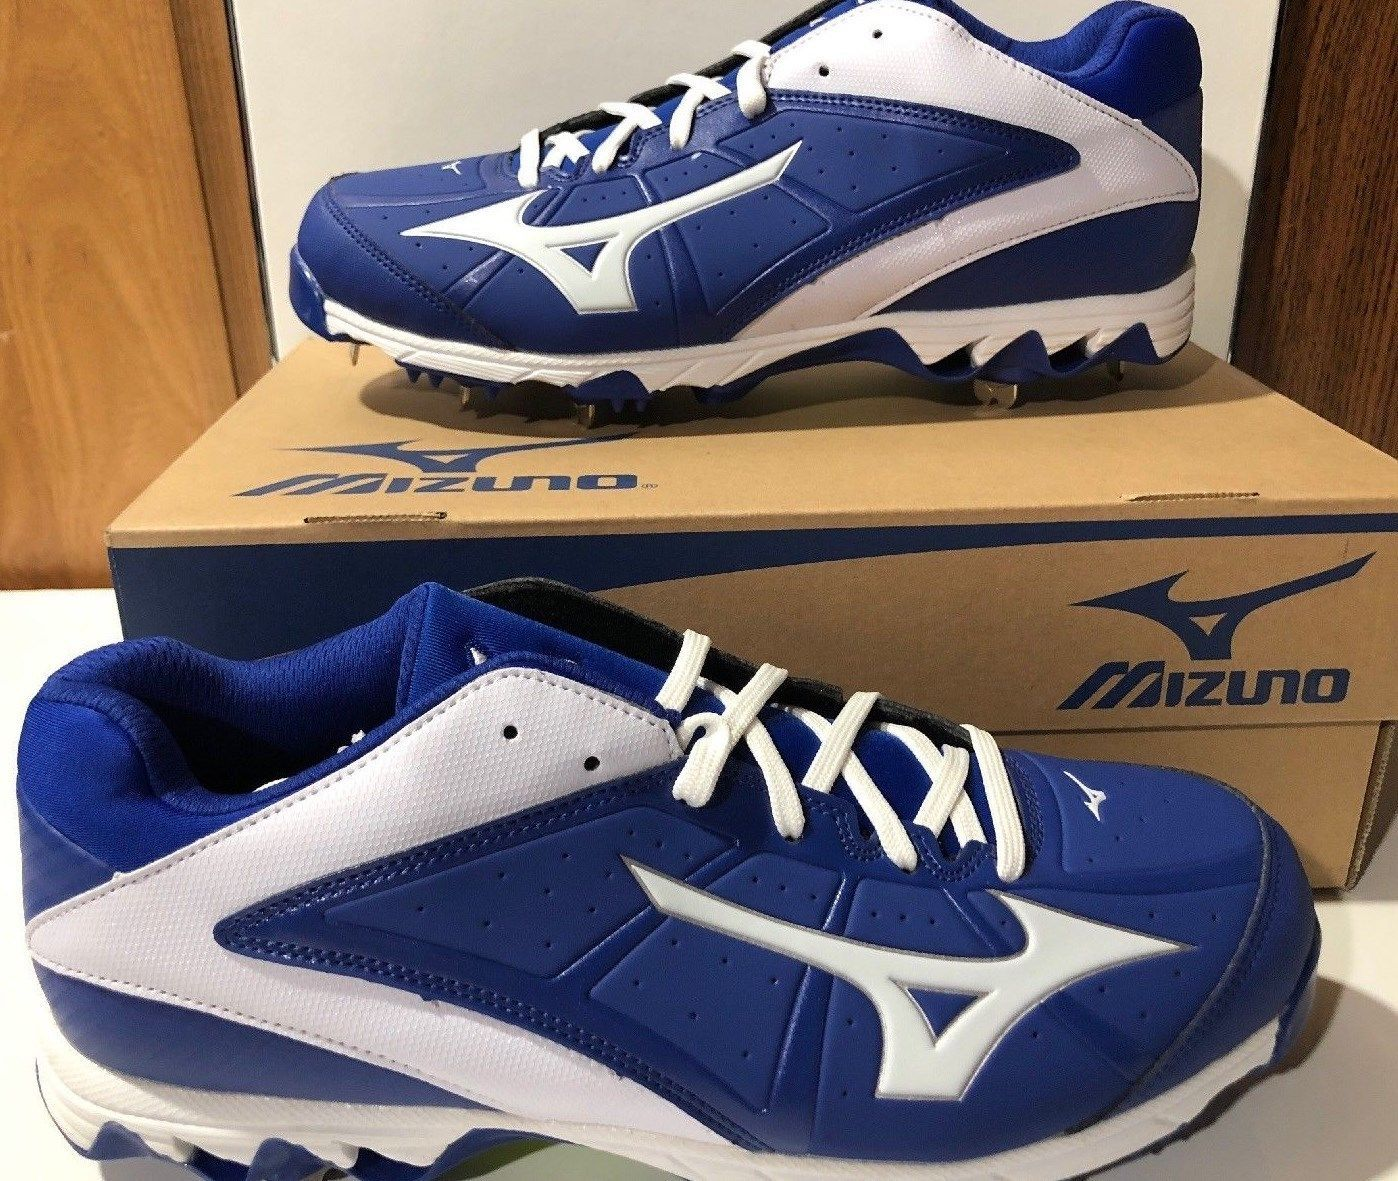 33b318088 Womens Softball Cleats 11.5 Mizuno 9-Spike and 50 similar items